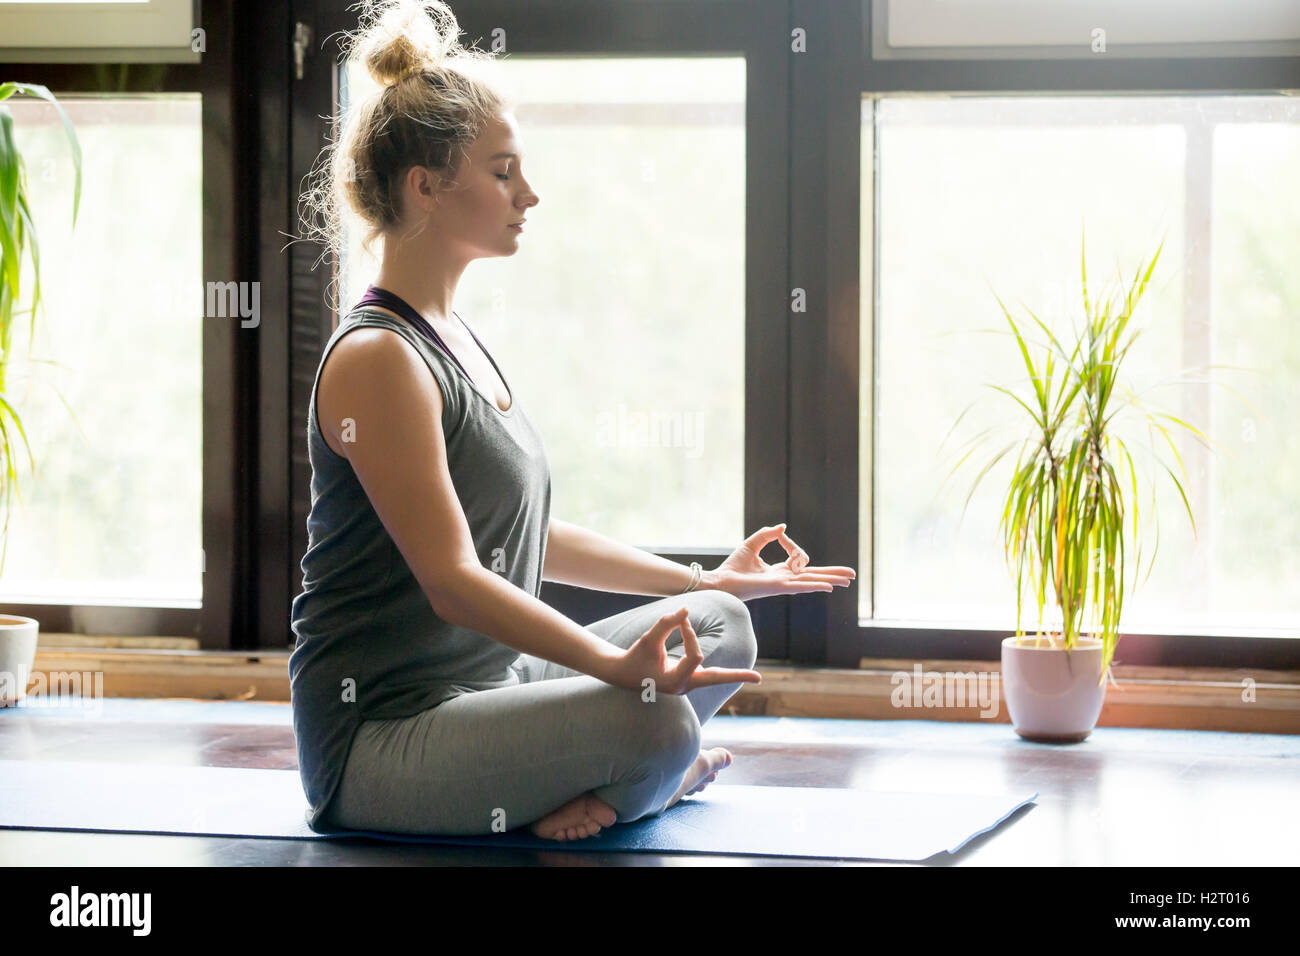 Yoga at home: meditating woman - Stock Image